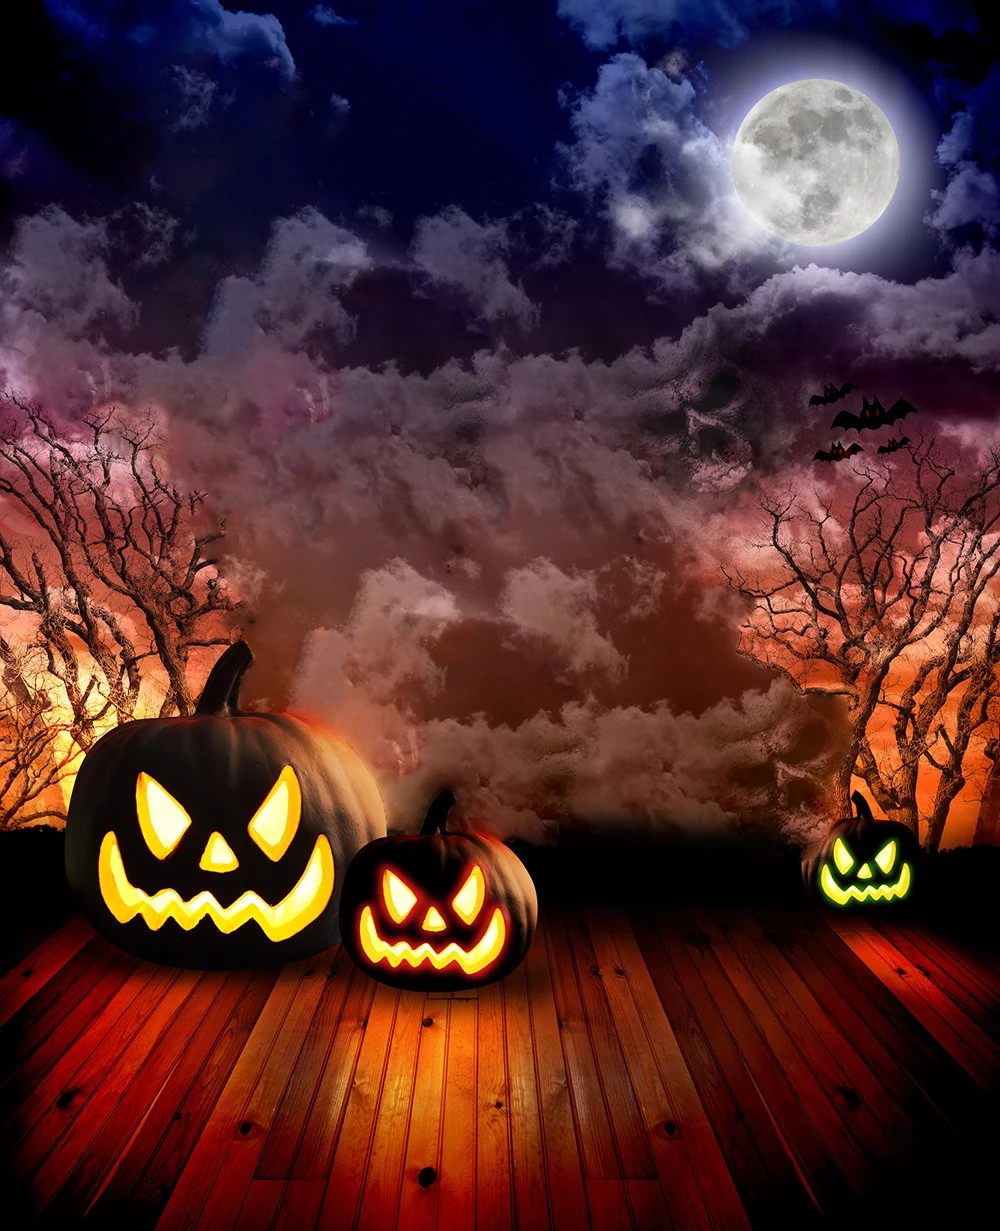 Baocicco 10x10ft Happy Halloween Party Backdrop Gloomy Pumpkin Lantern Scary Pumpkin Face Photography Background Wallpaper Decor Halloween Eve Party Night Party Trick or Treat Children Portrait